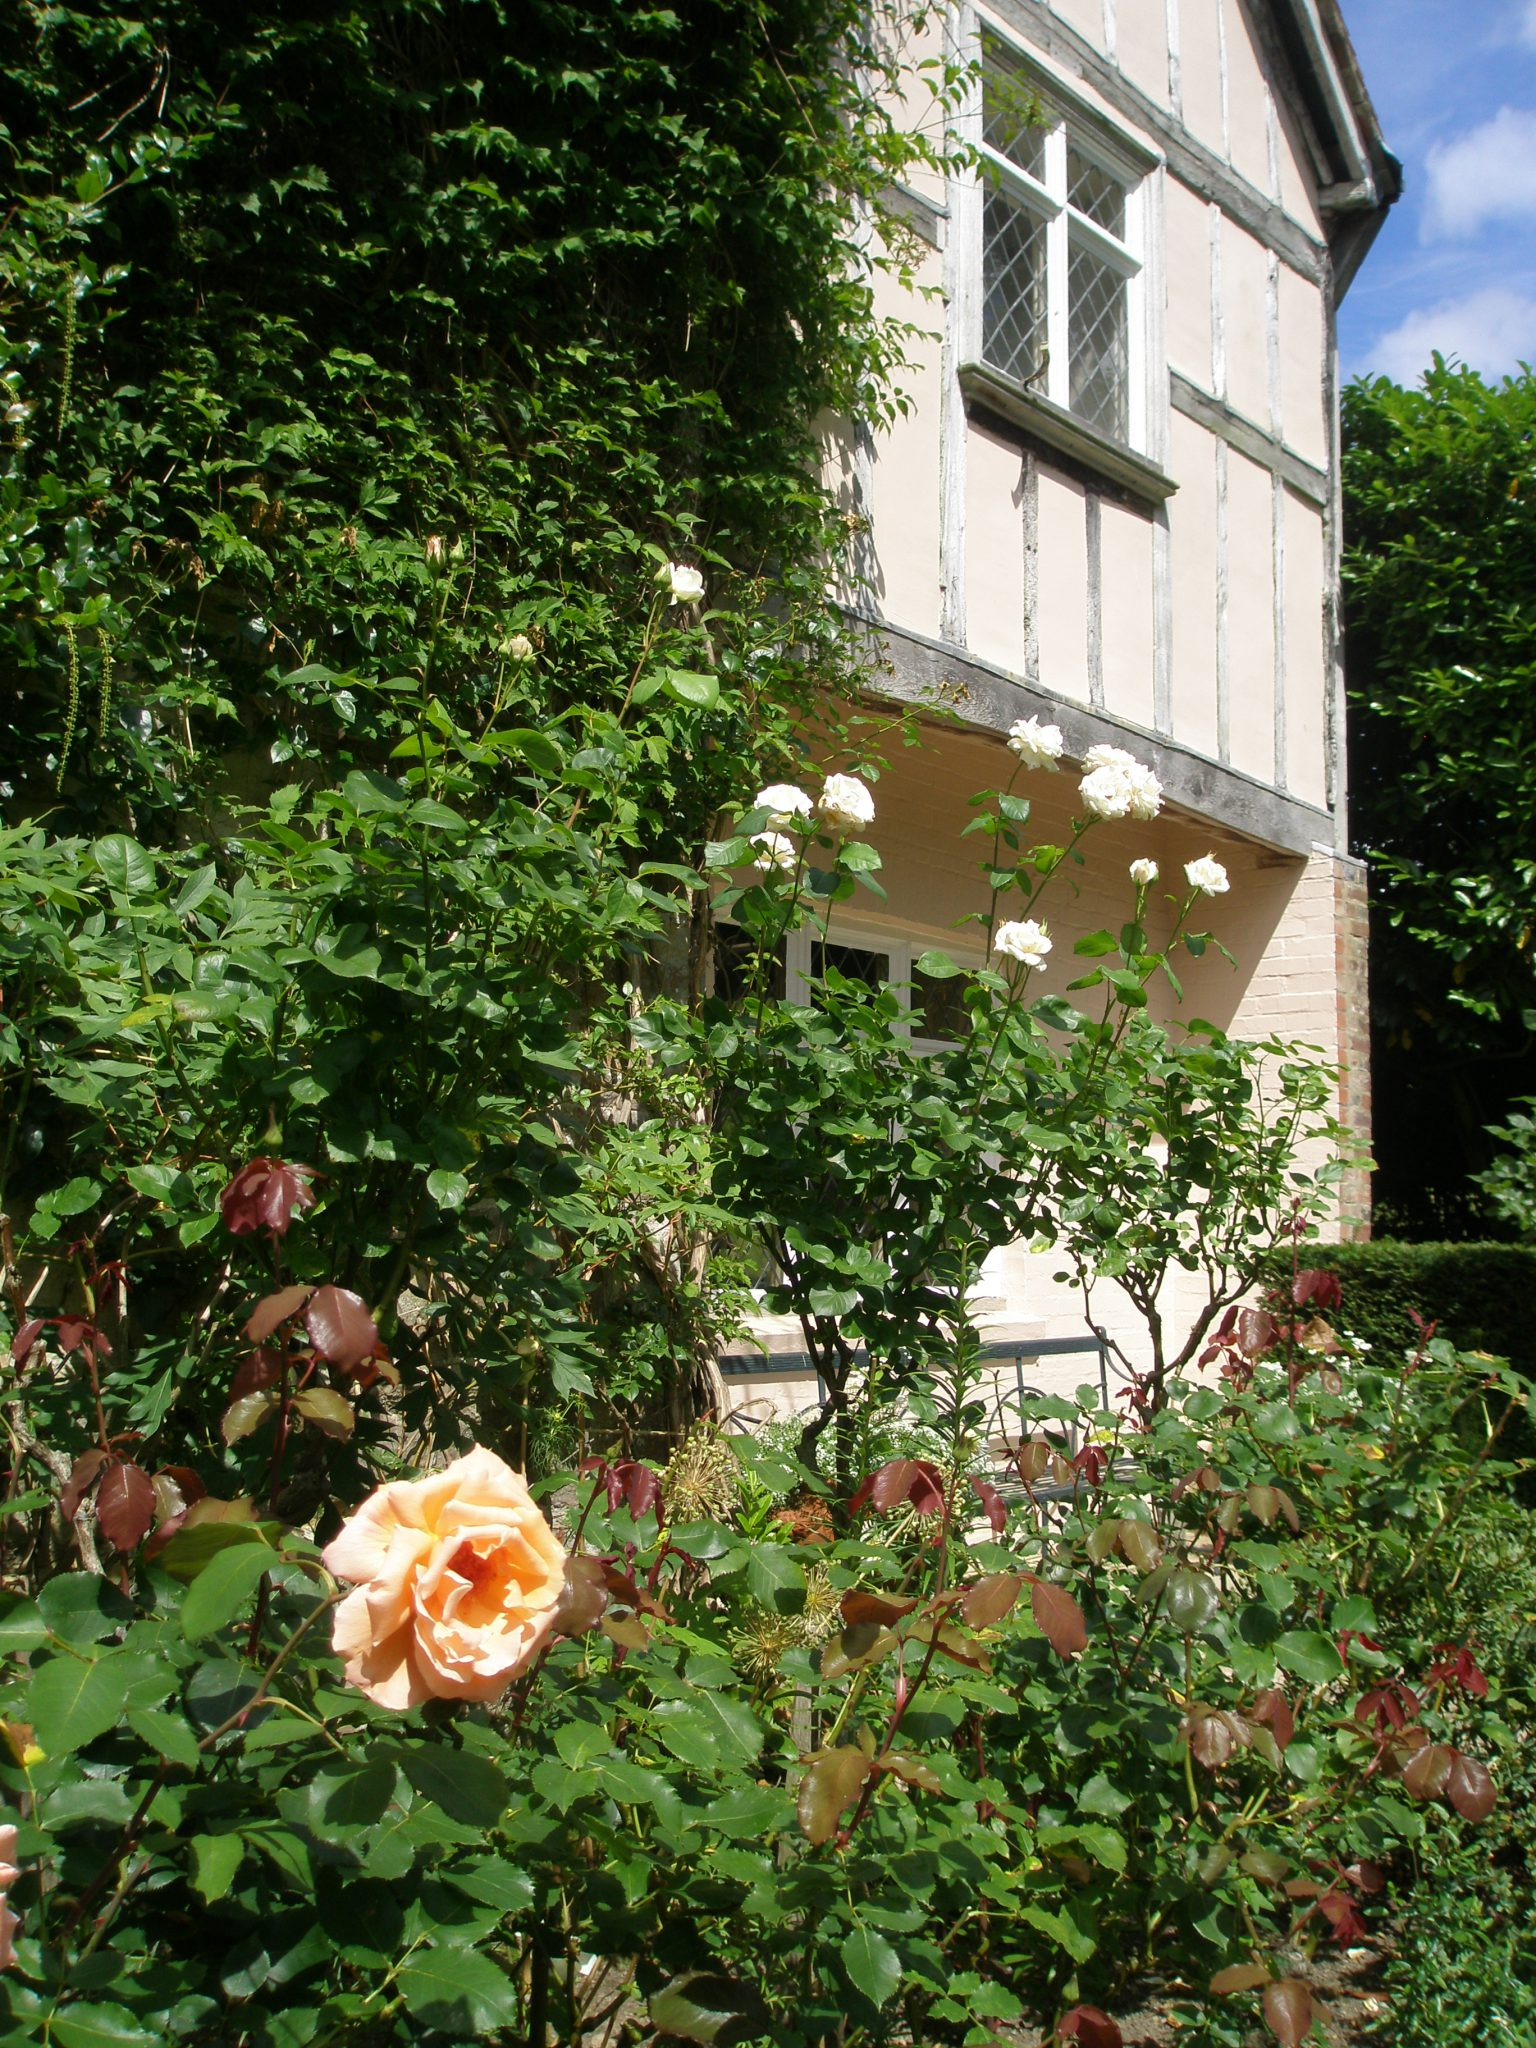 Roses on the Main Terrace, by the old, half-timbered walls of the House